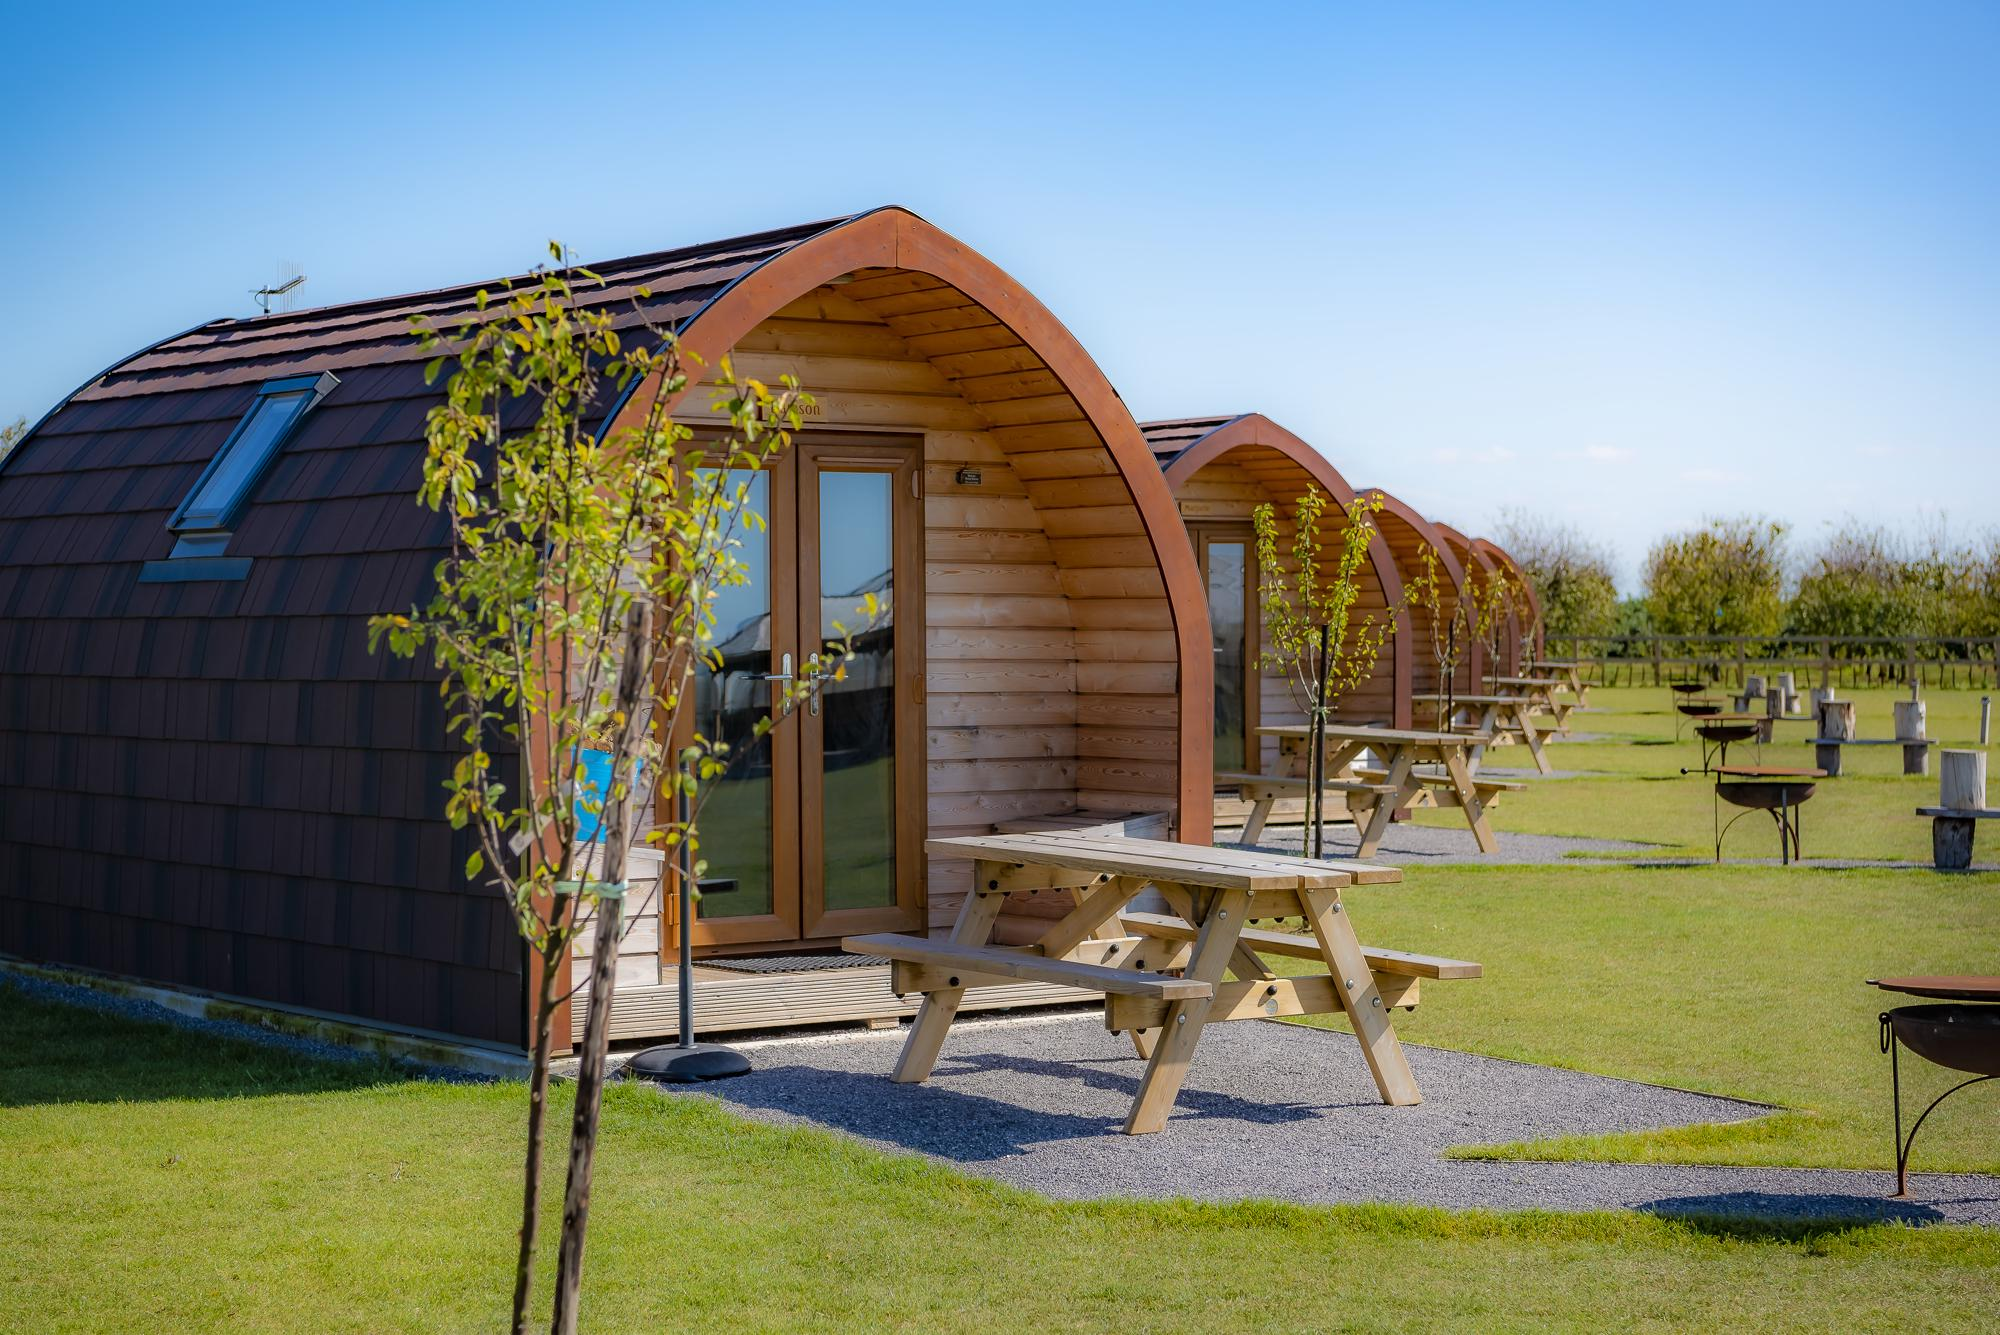 Campsites in Maidstone holidays at Cool Camping